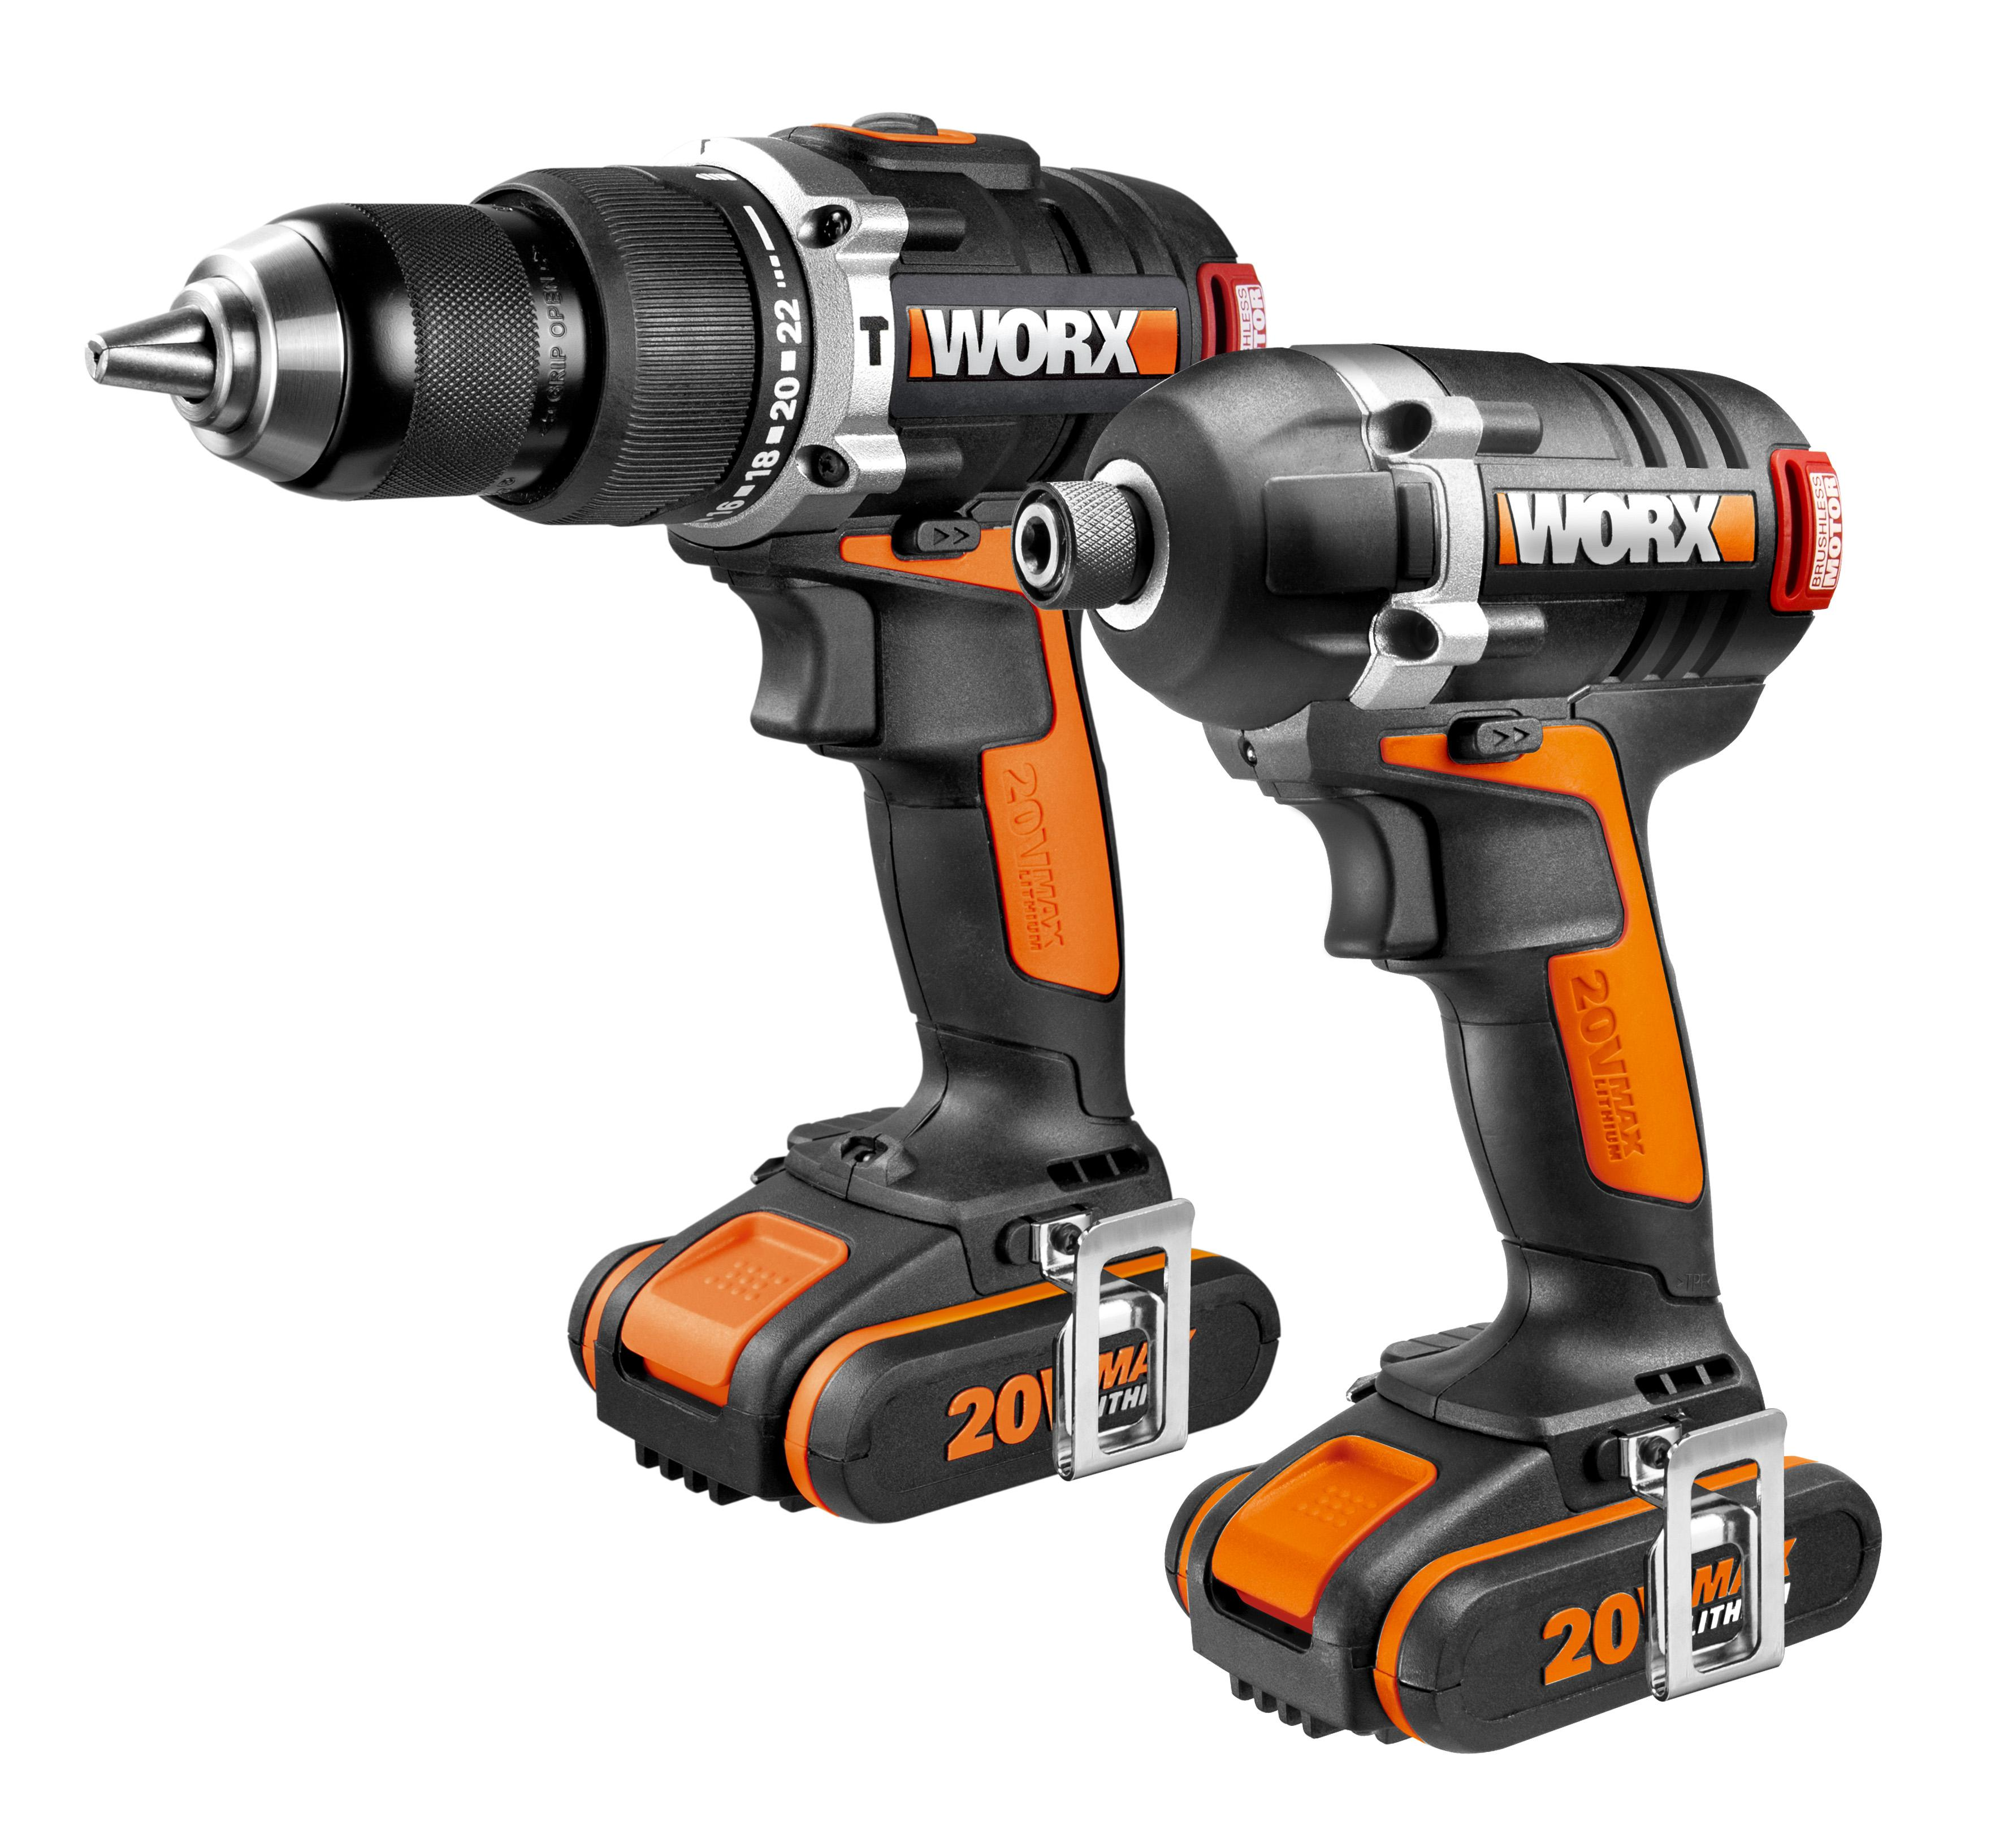 Worx Wx918 20 V Lithium Ion Brushless Motor Impact Driver And Hammer Drill Diy